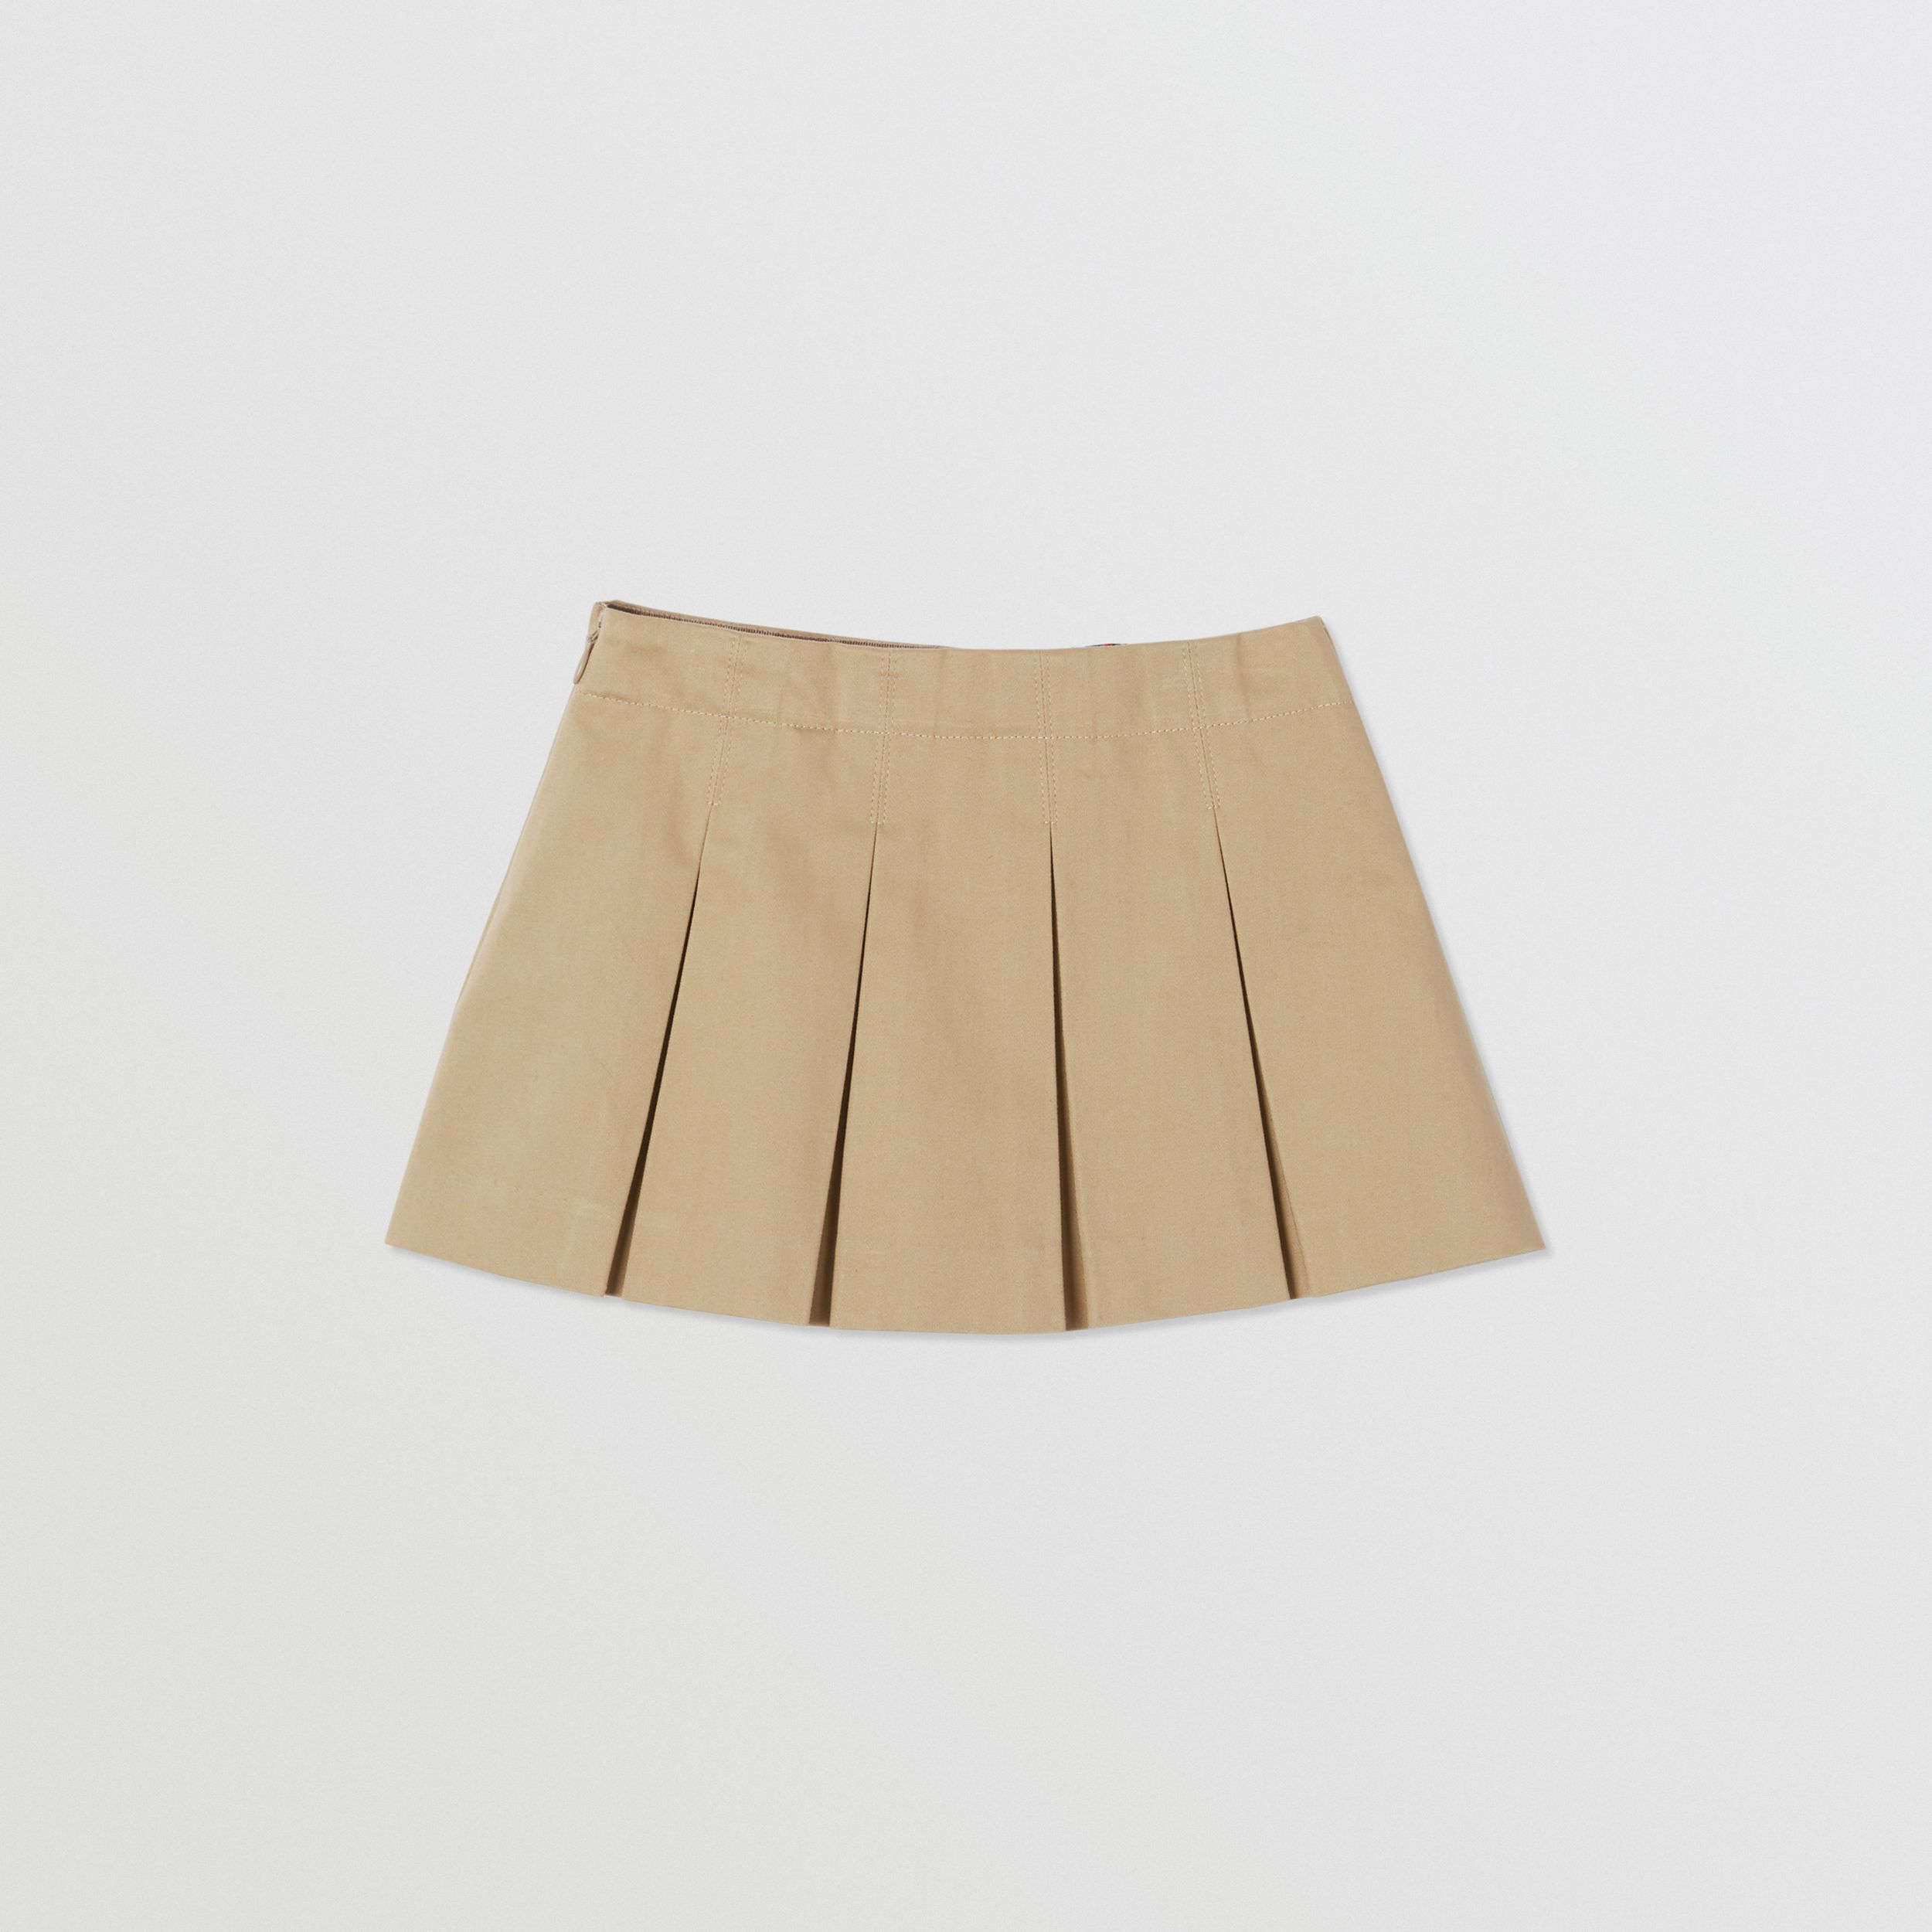 Monogram Stripe Print Box-pleated Cotton Skirt in Honey - Children | Burberry - 4